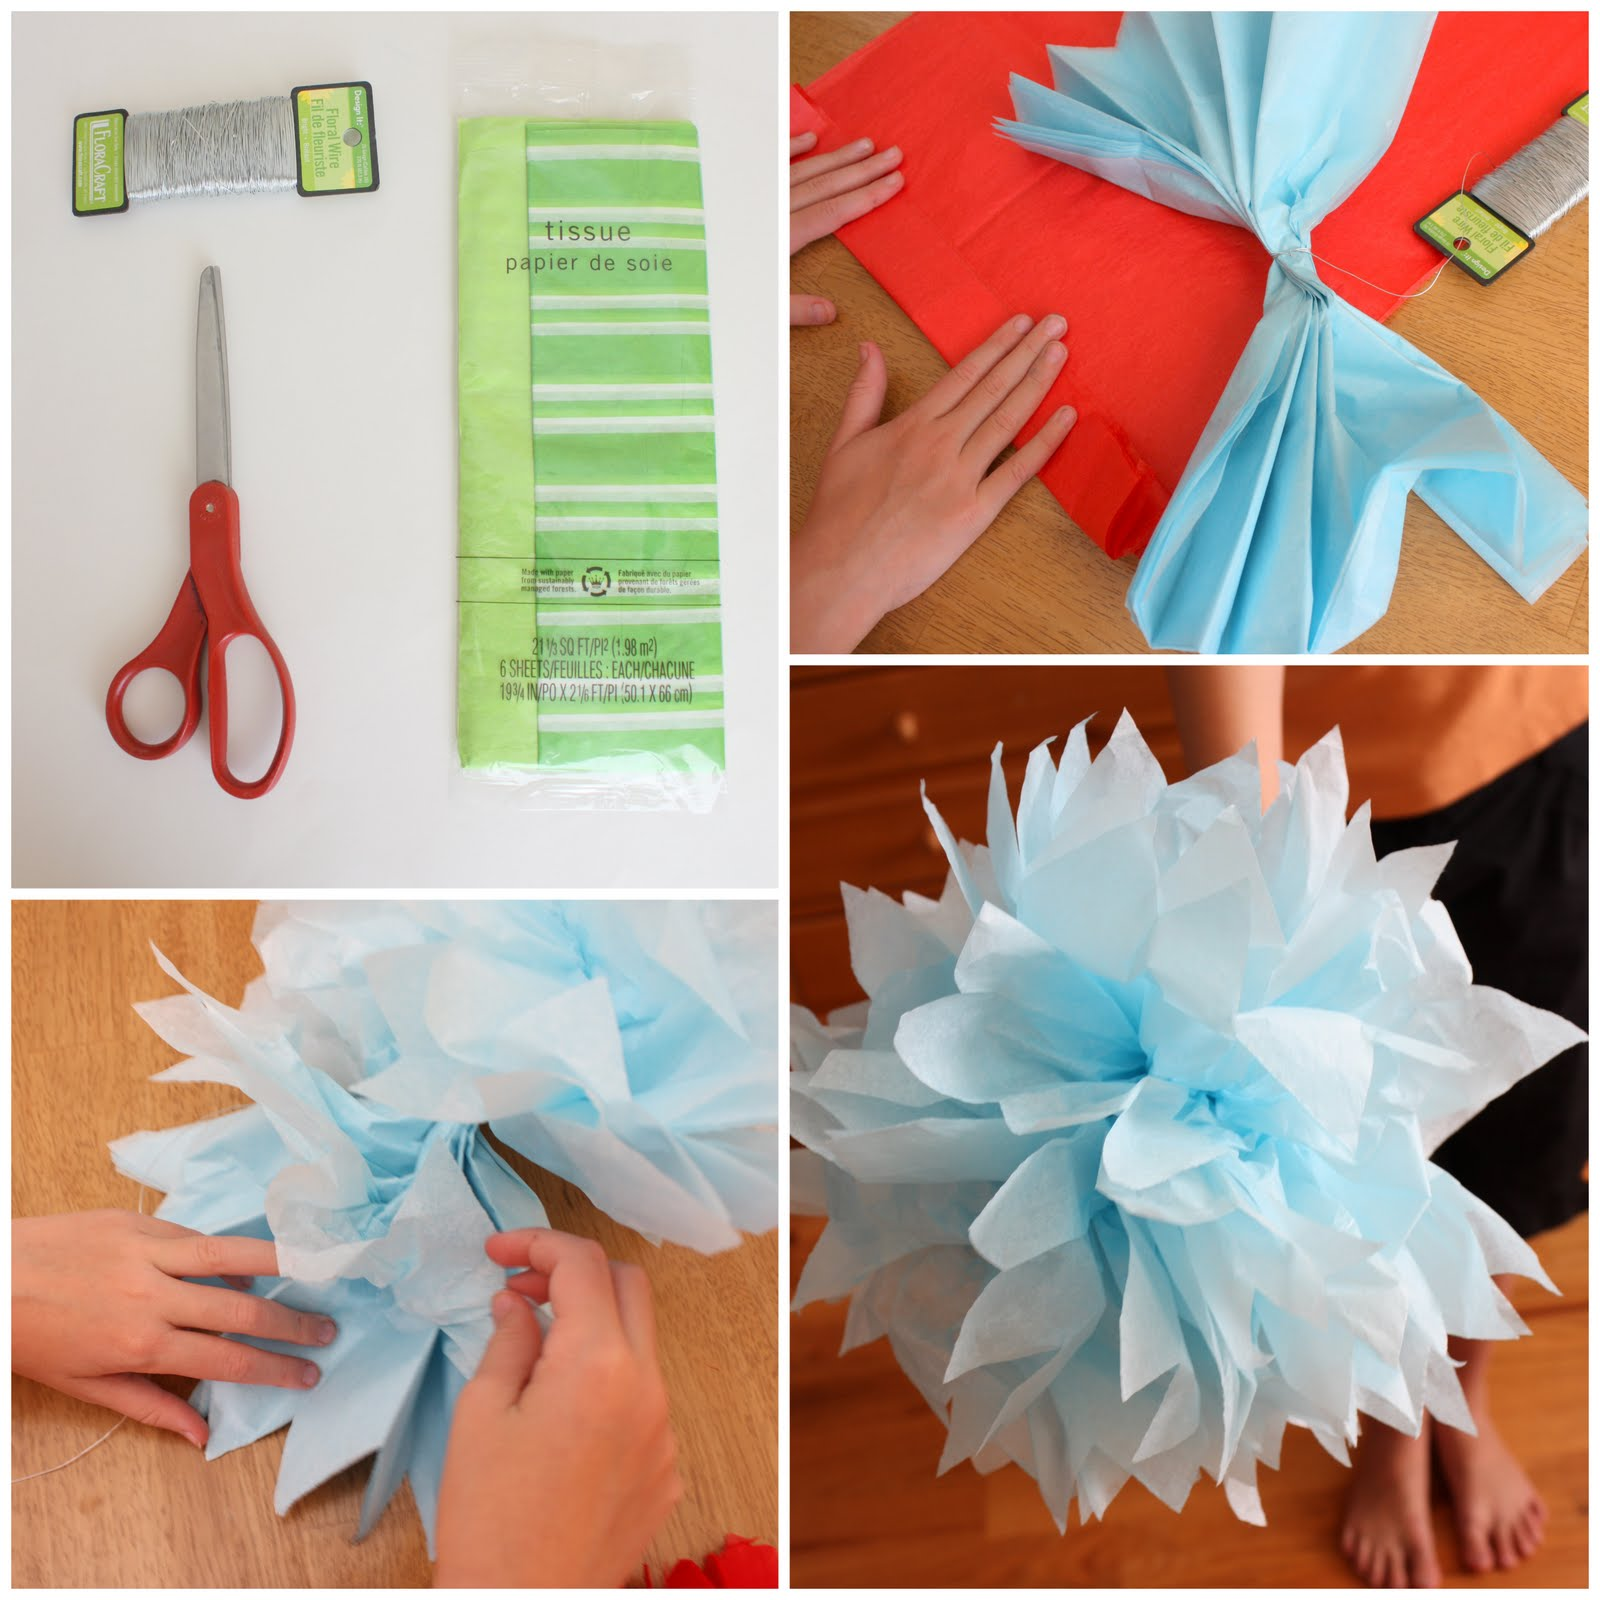 92 art and craft for kids with tissue paper step by step image summer crafts with kids report mightylinksfo